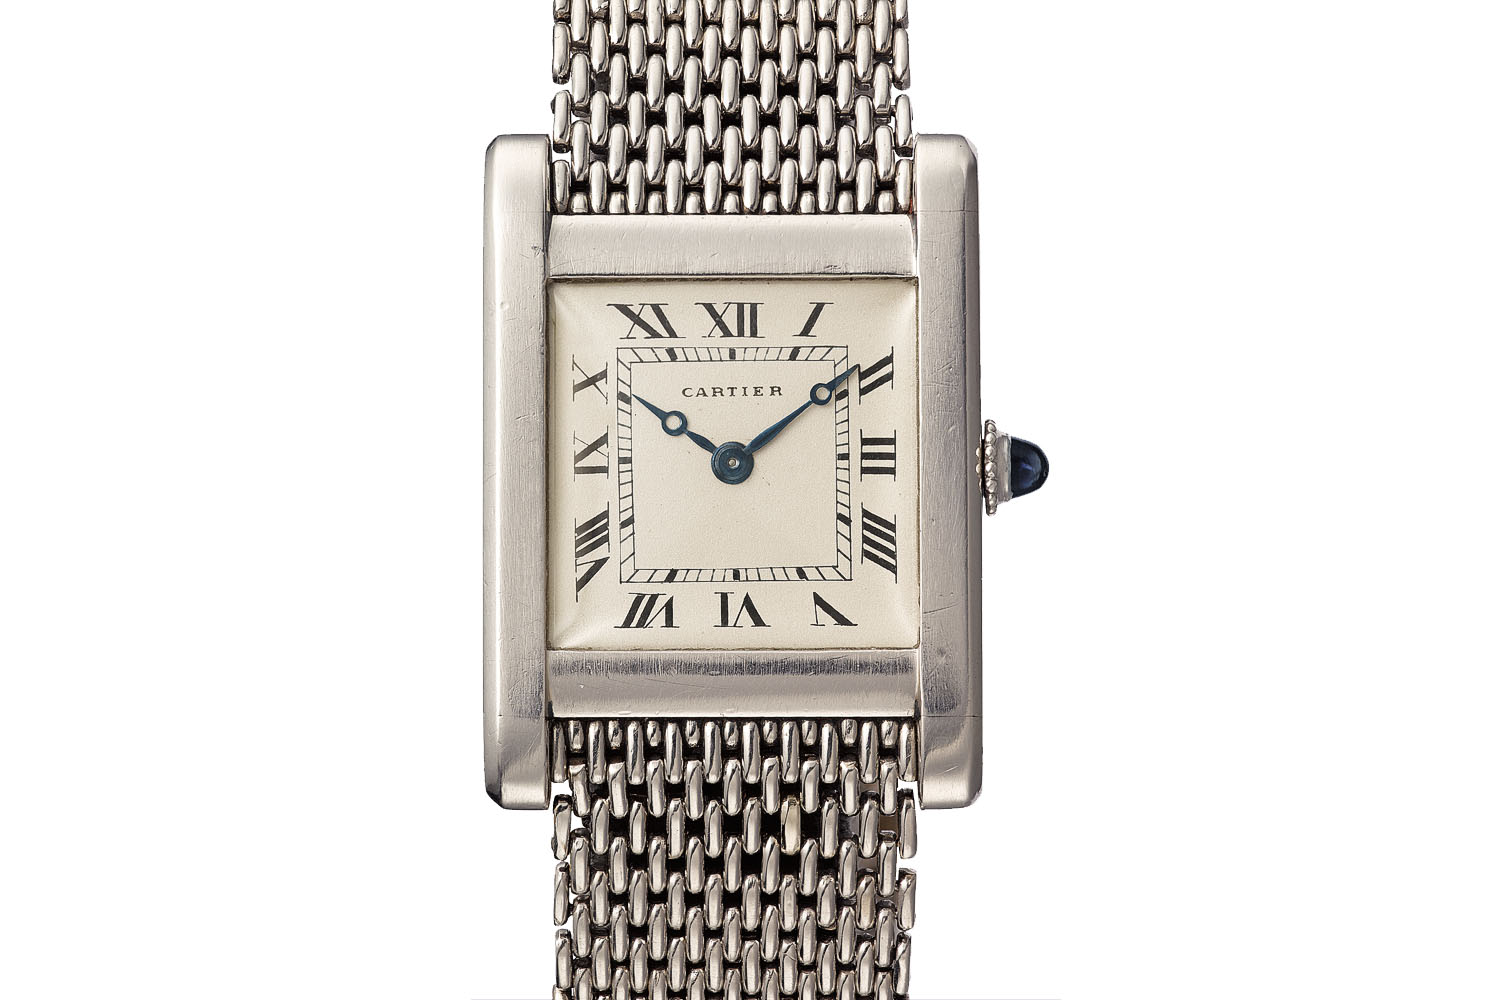 History Cartier Tank 100 years - Cartier tank Normale 1927 ... ee5847e260